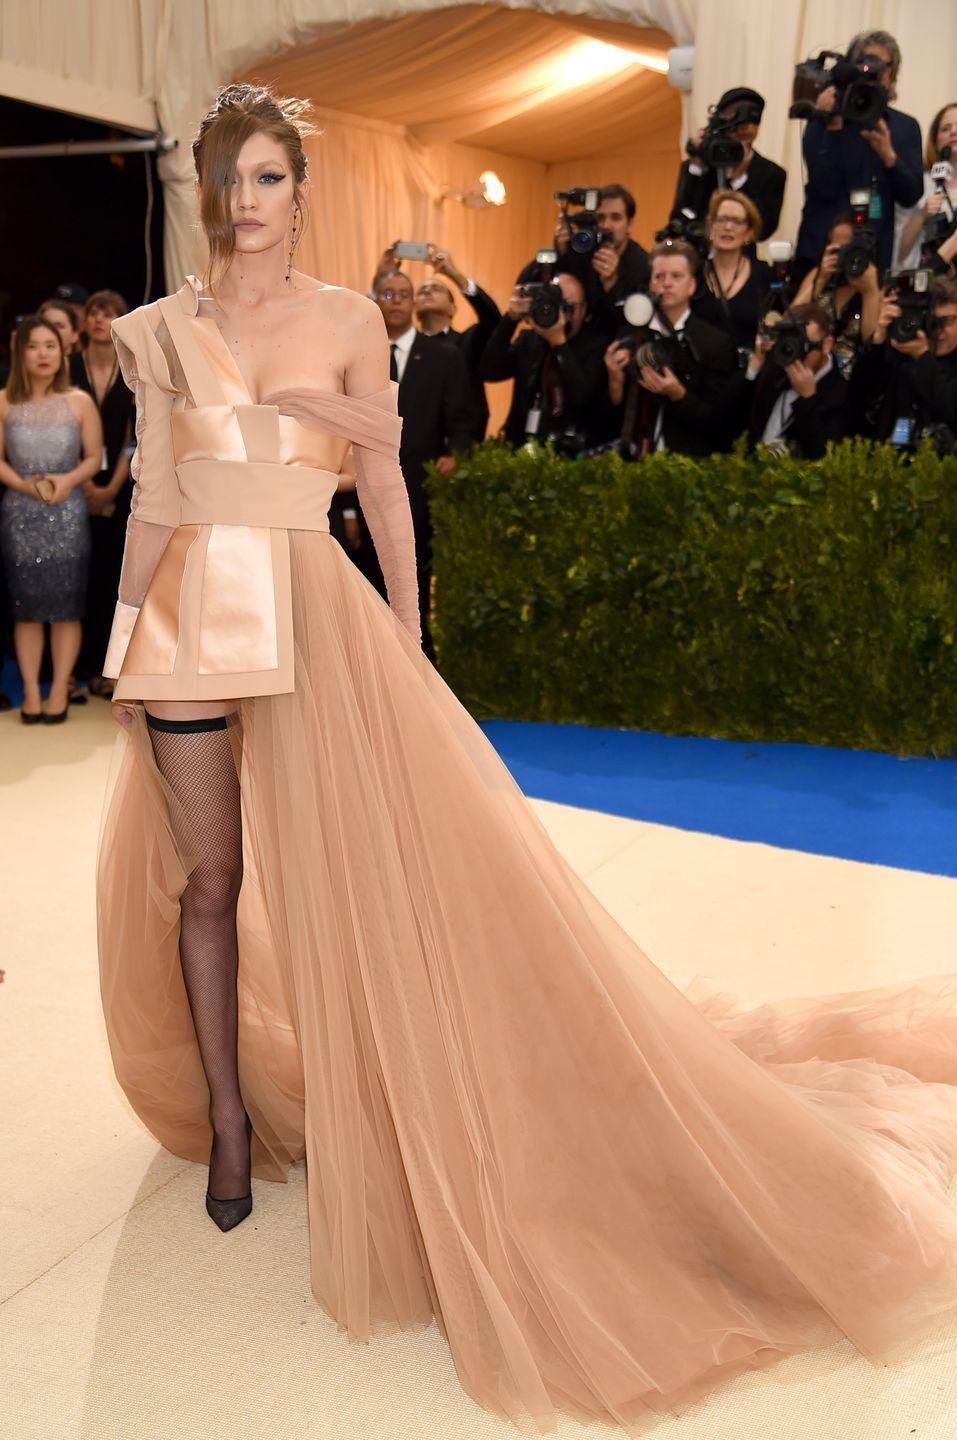 <p>The asymmetrical design and belted detail on the Tommy Hilfiger gown Gigi Hadid wore to the 2017 Met Gala reminds us of Mulan's army attire.</p>